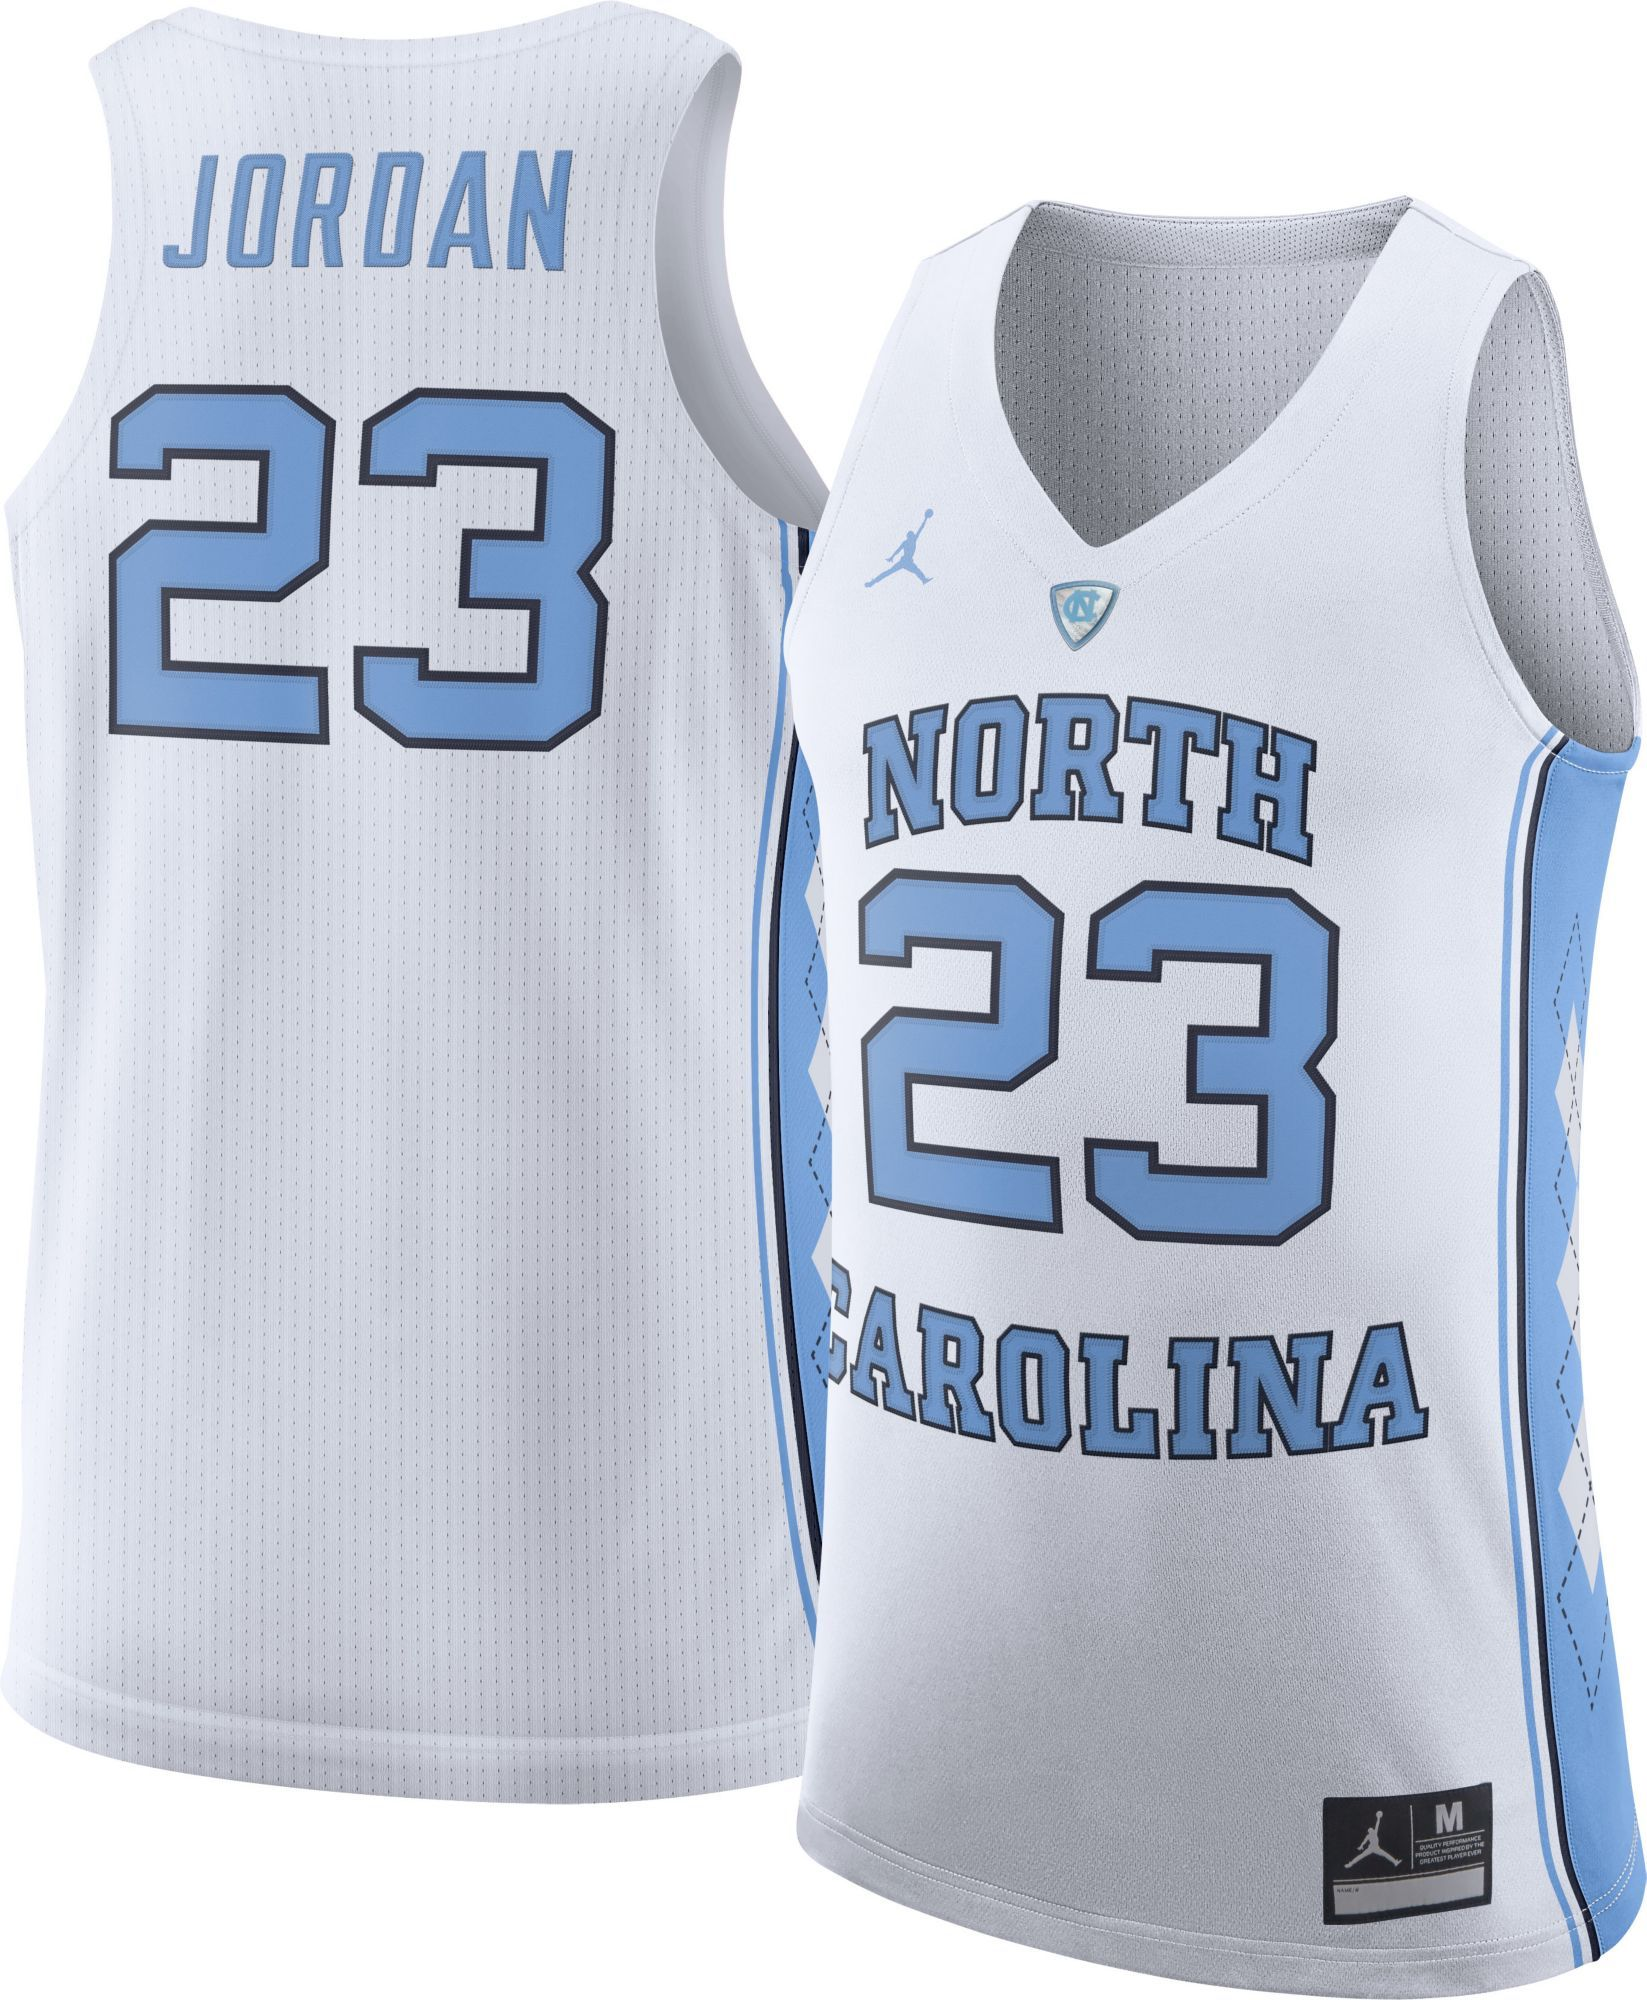 c8ea51263c9aac Jordan Men s Michael Jordan North Carolina Tar Heels  23 White Authentic  College Alumni Jersey